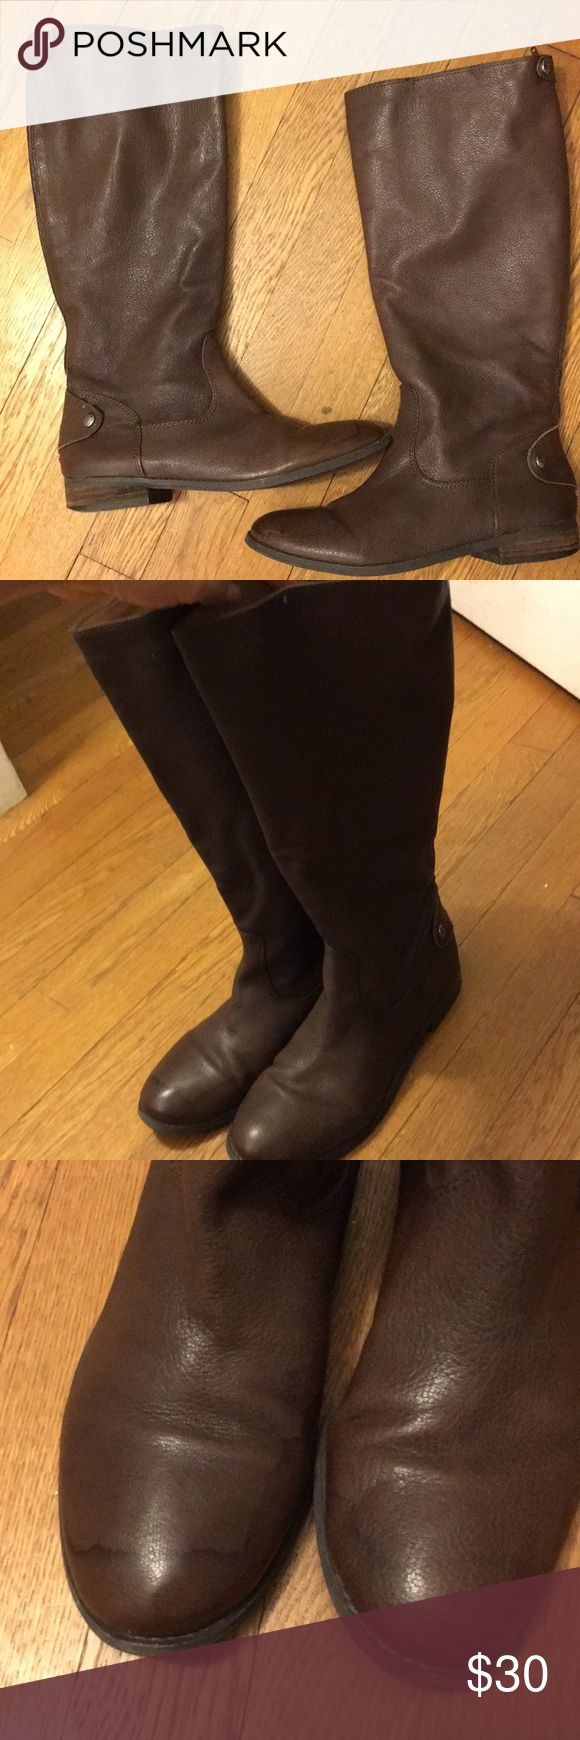 Real leather BCBG boots These boots are soft genuine leather and match with every outfit! They are in good used condition with some water damage on the right toe (see photo). They zip up the back and are super comfortable! BCBGeneration Shoes